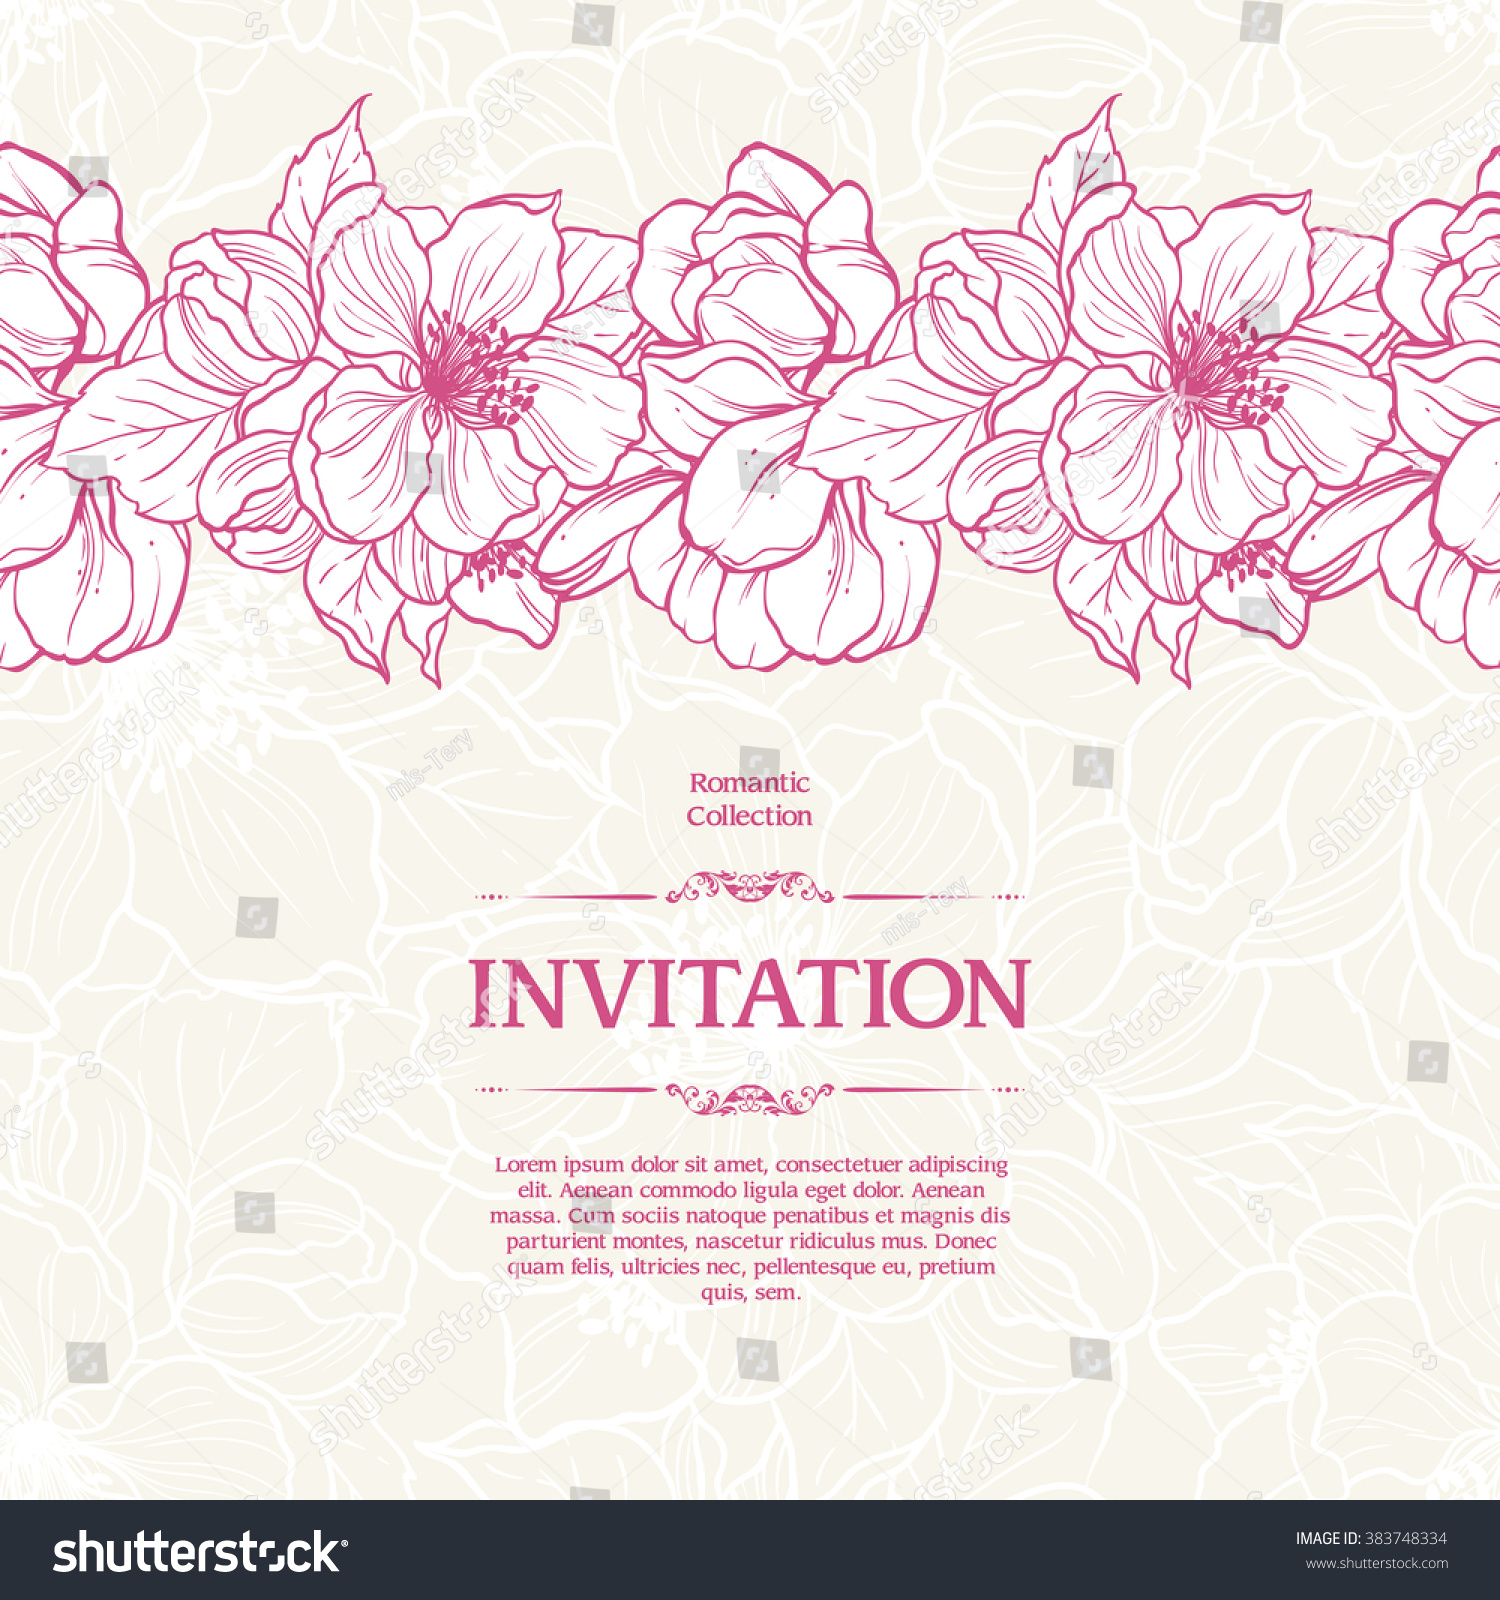 Romantic vector seamless background greeting card wallpaper vector art - Vintage Background With Seamless Floral Pattern And Spring Flowers Border Vector Botanical Illustration Template